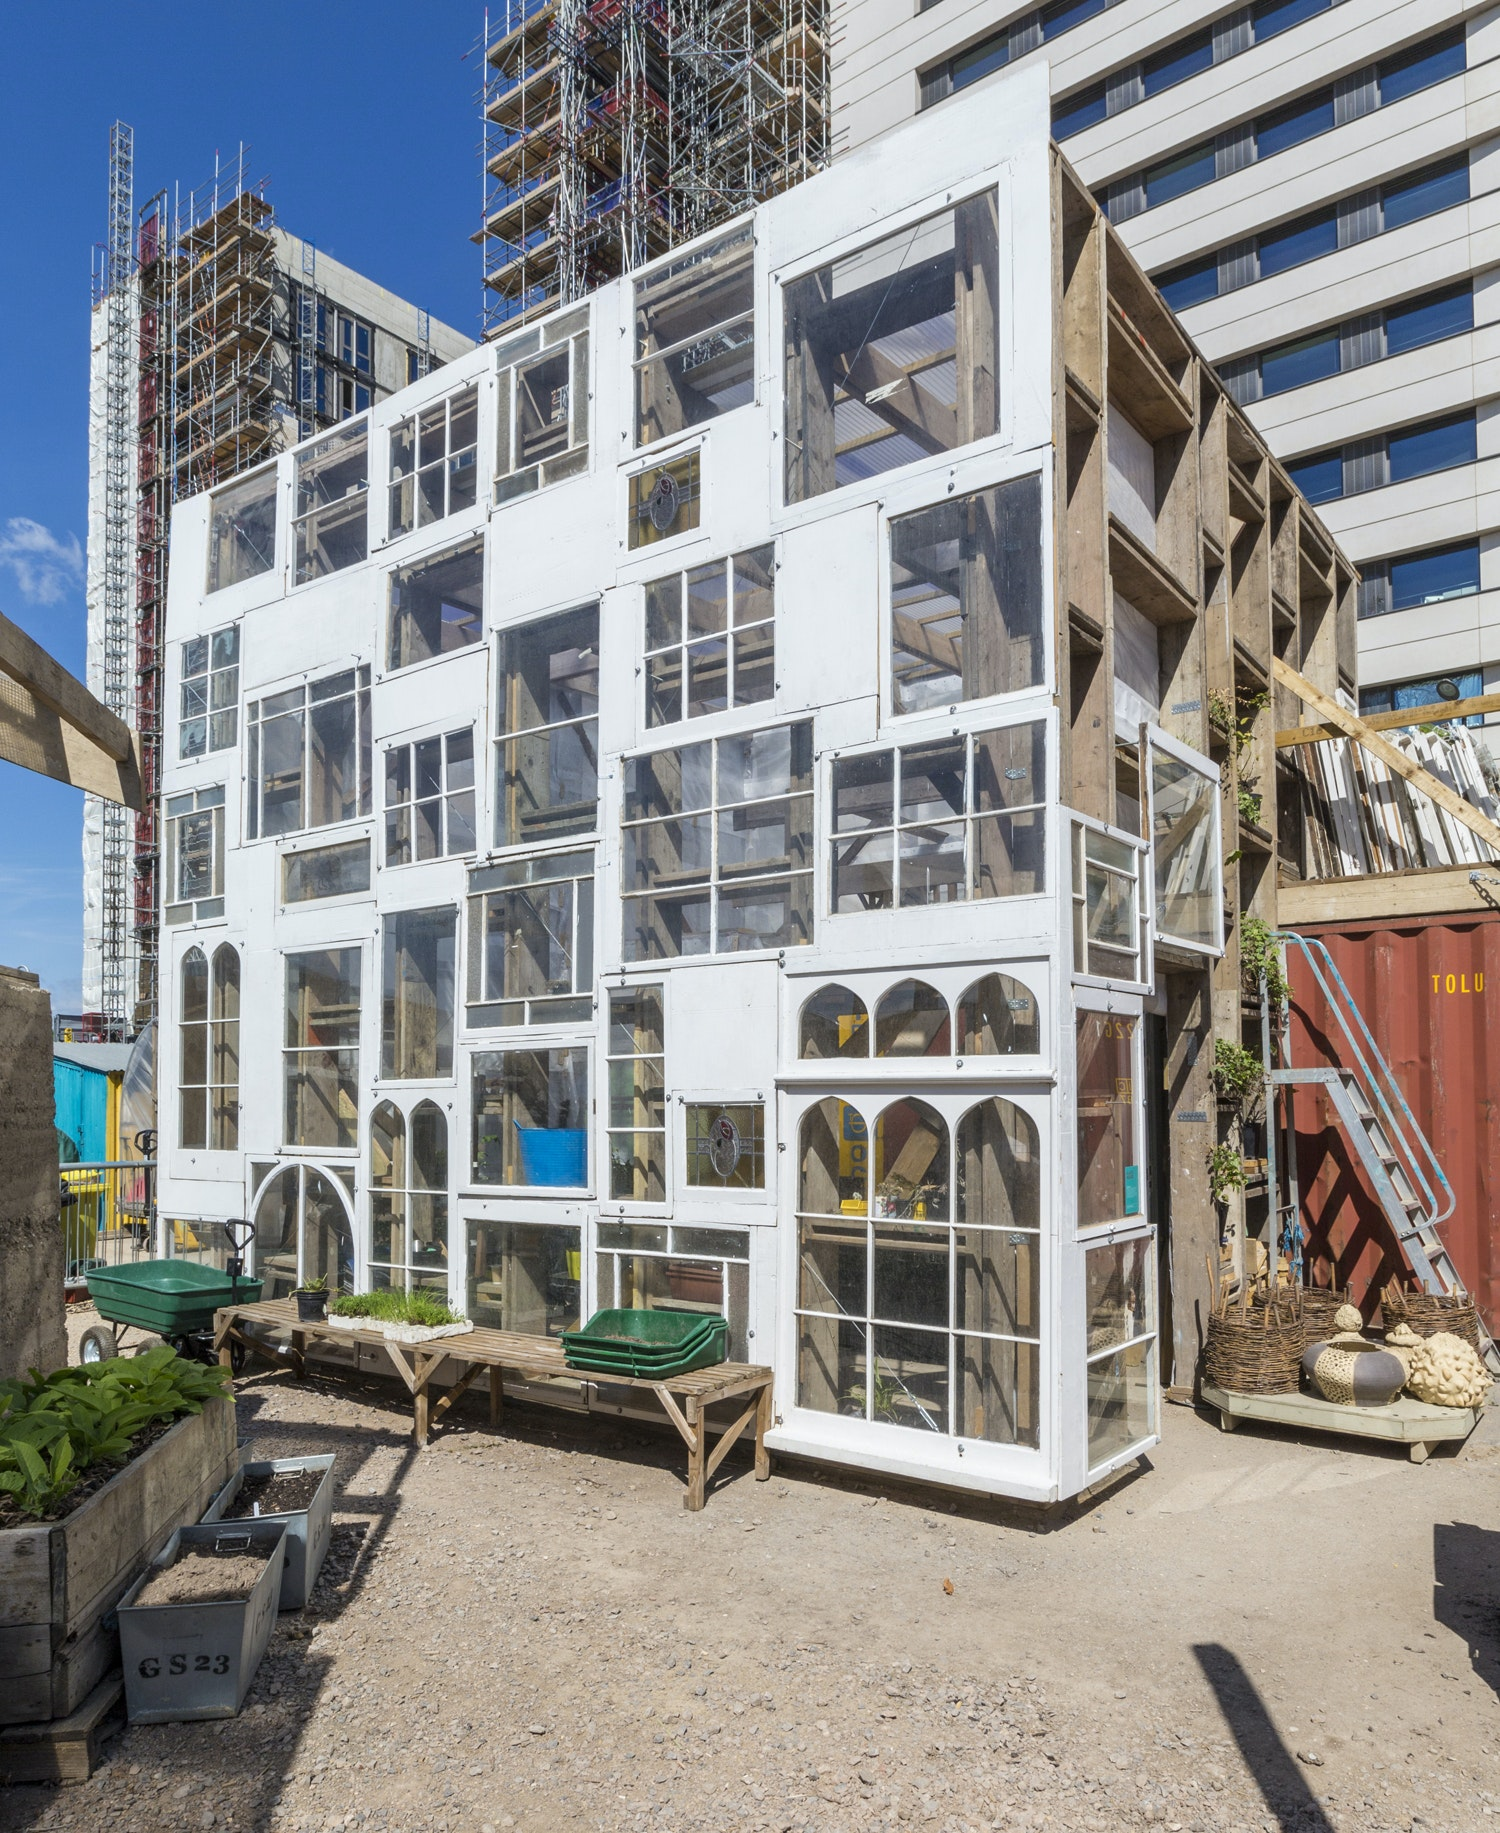 Bartlett students collaborate with mobile urban garden project in London